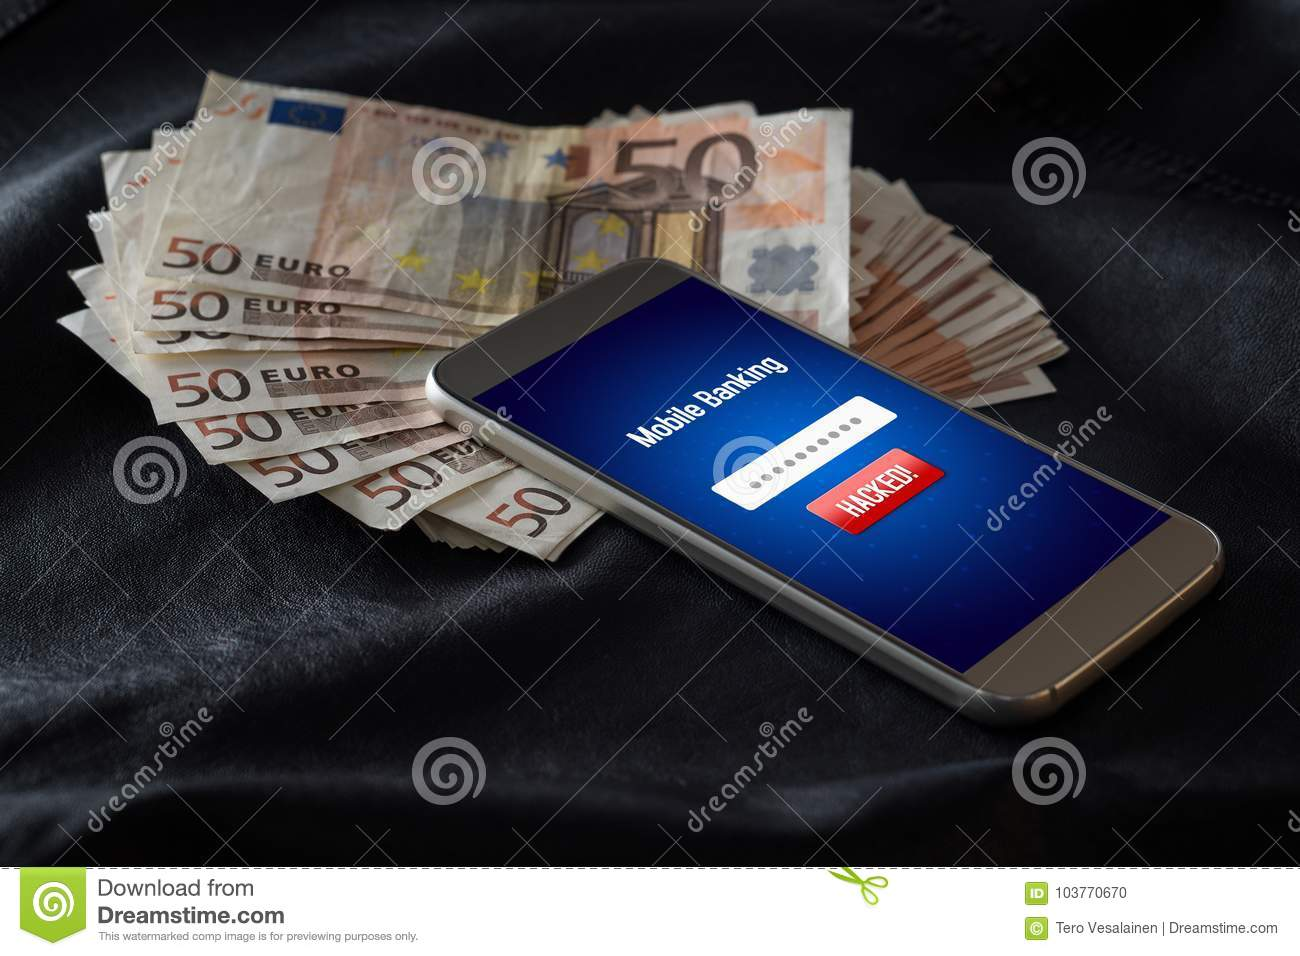 Mobile Banking Hack And Cyber Security Concept  Stock Photo